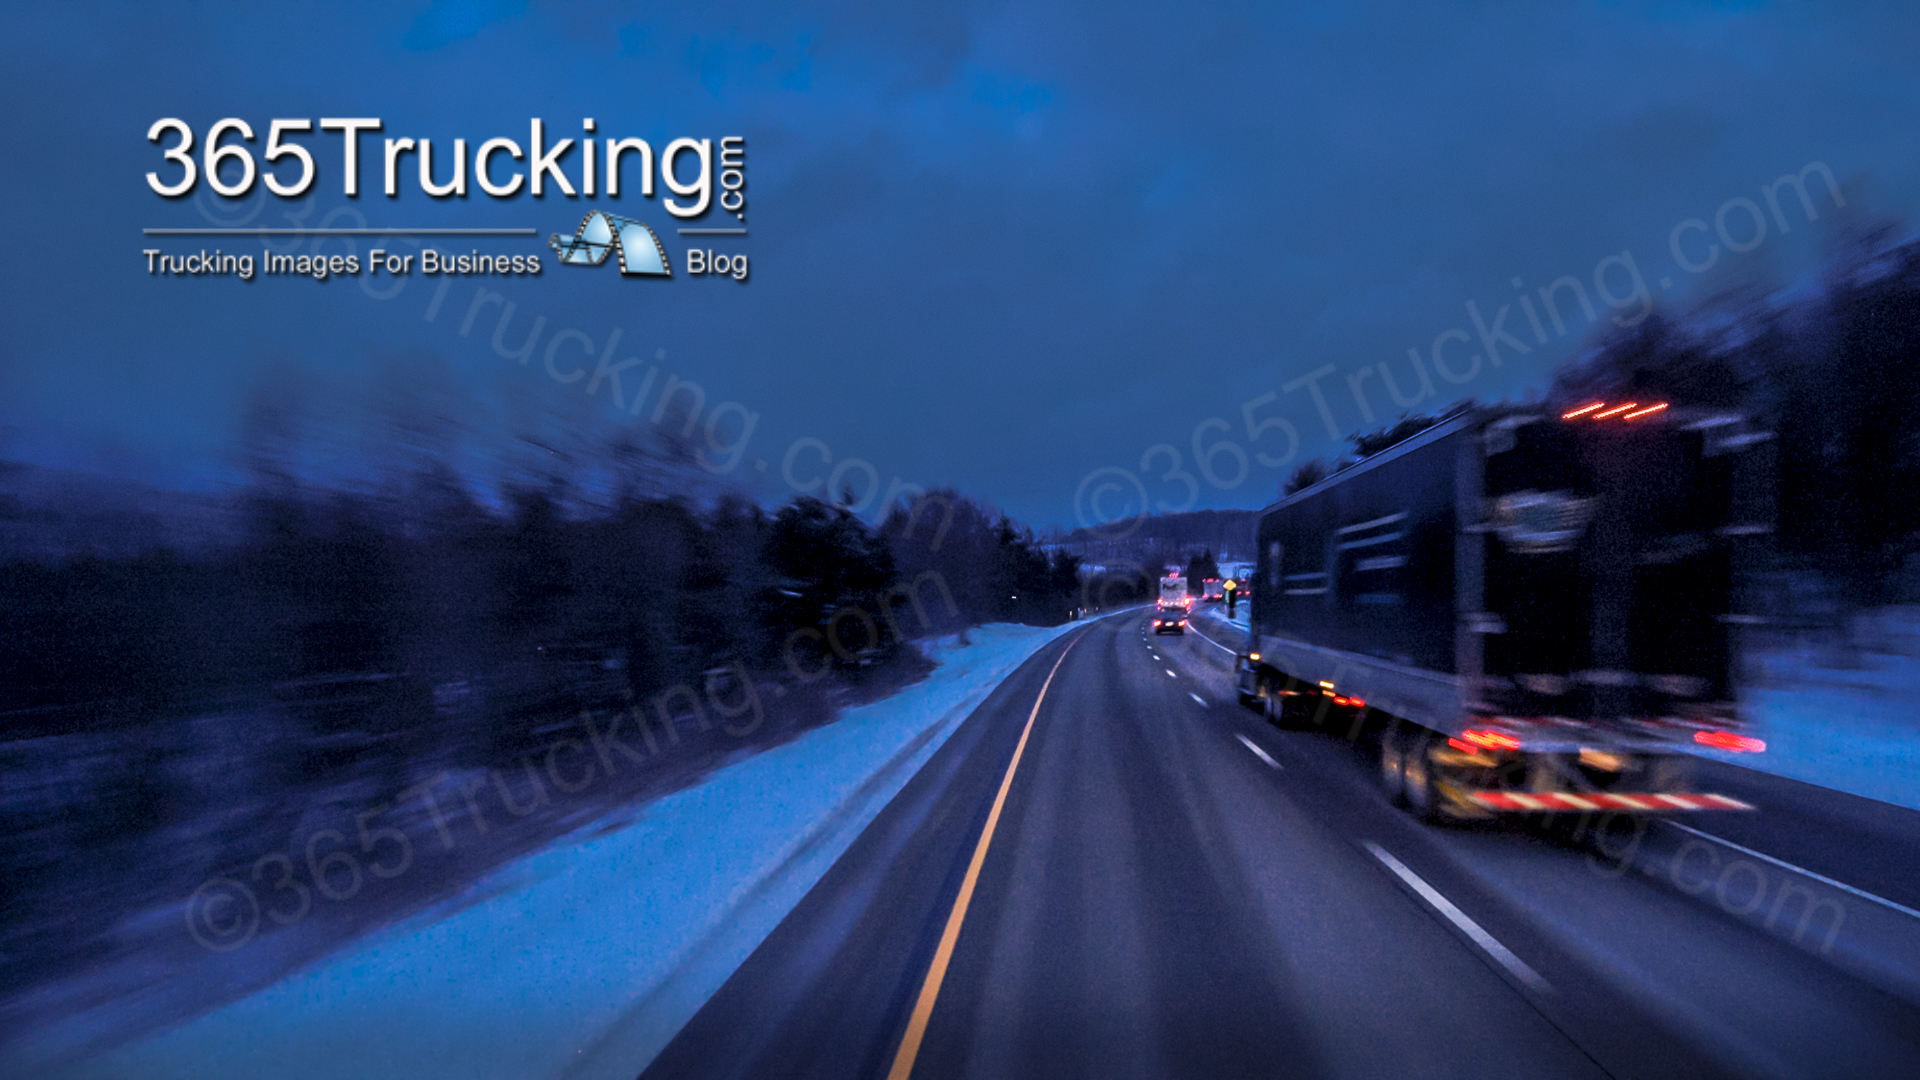 All images provided by  truckstockimages.com  To see more, click  HERE